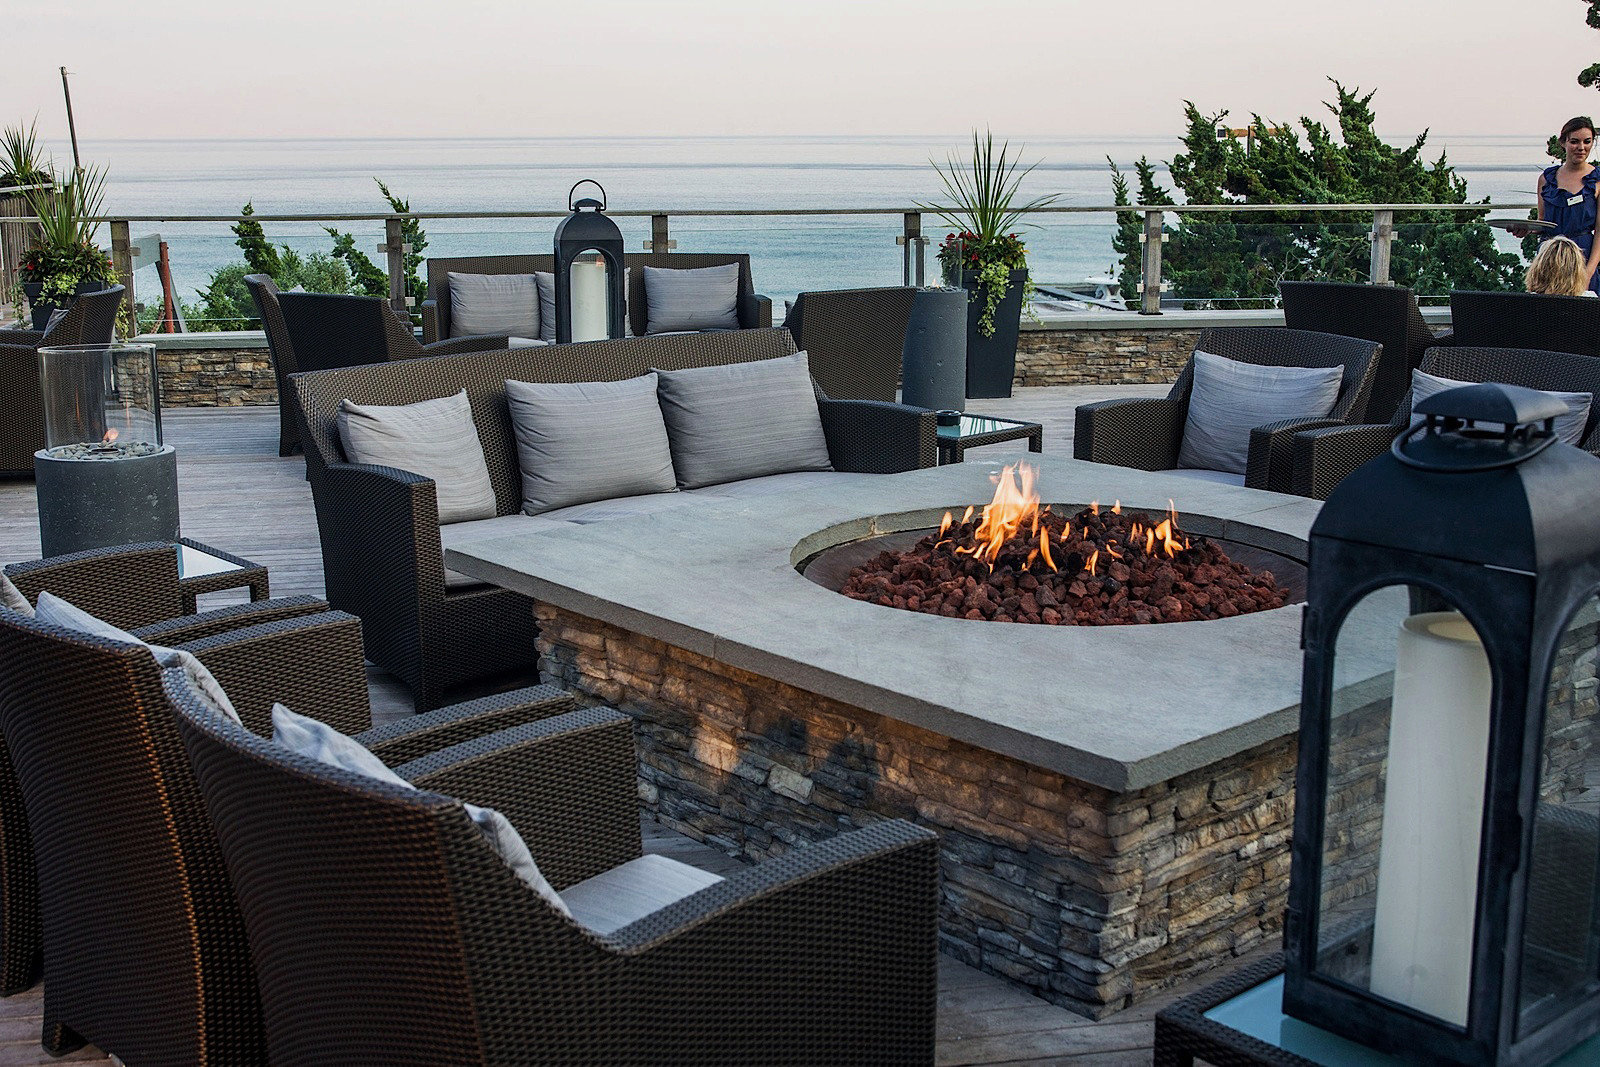 Firepit Resort Trip Ideas sky property chair home outdoor structure living room Patio cottage Villa set